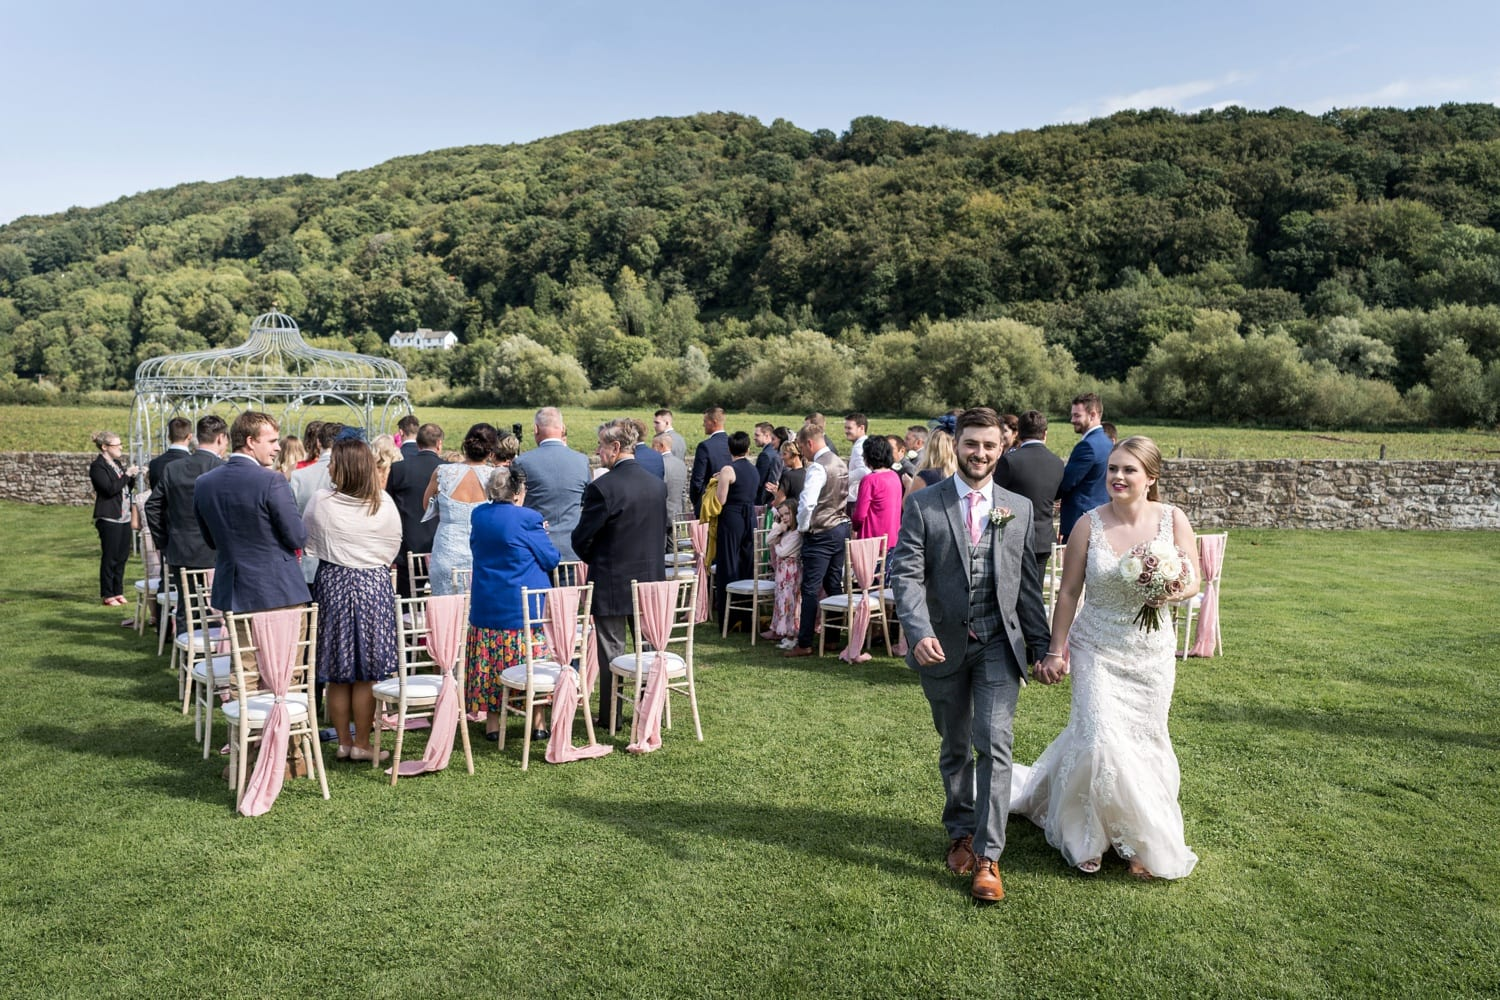 Outdoor marriage ceremony at Herefordshire wedding venue Flanesford Priory